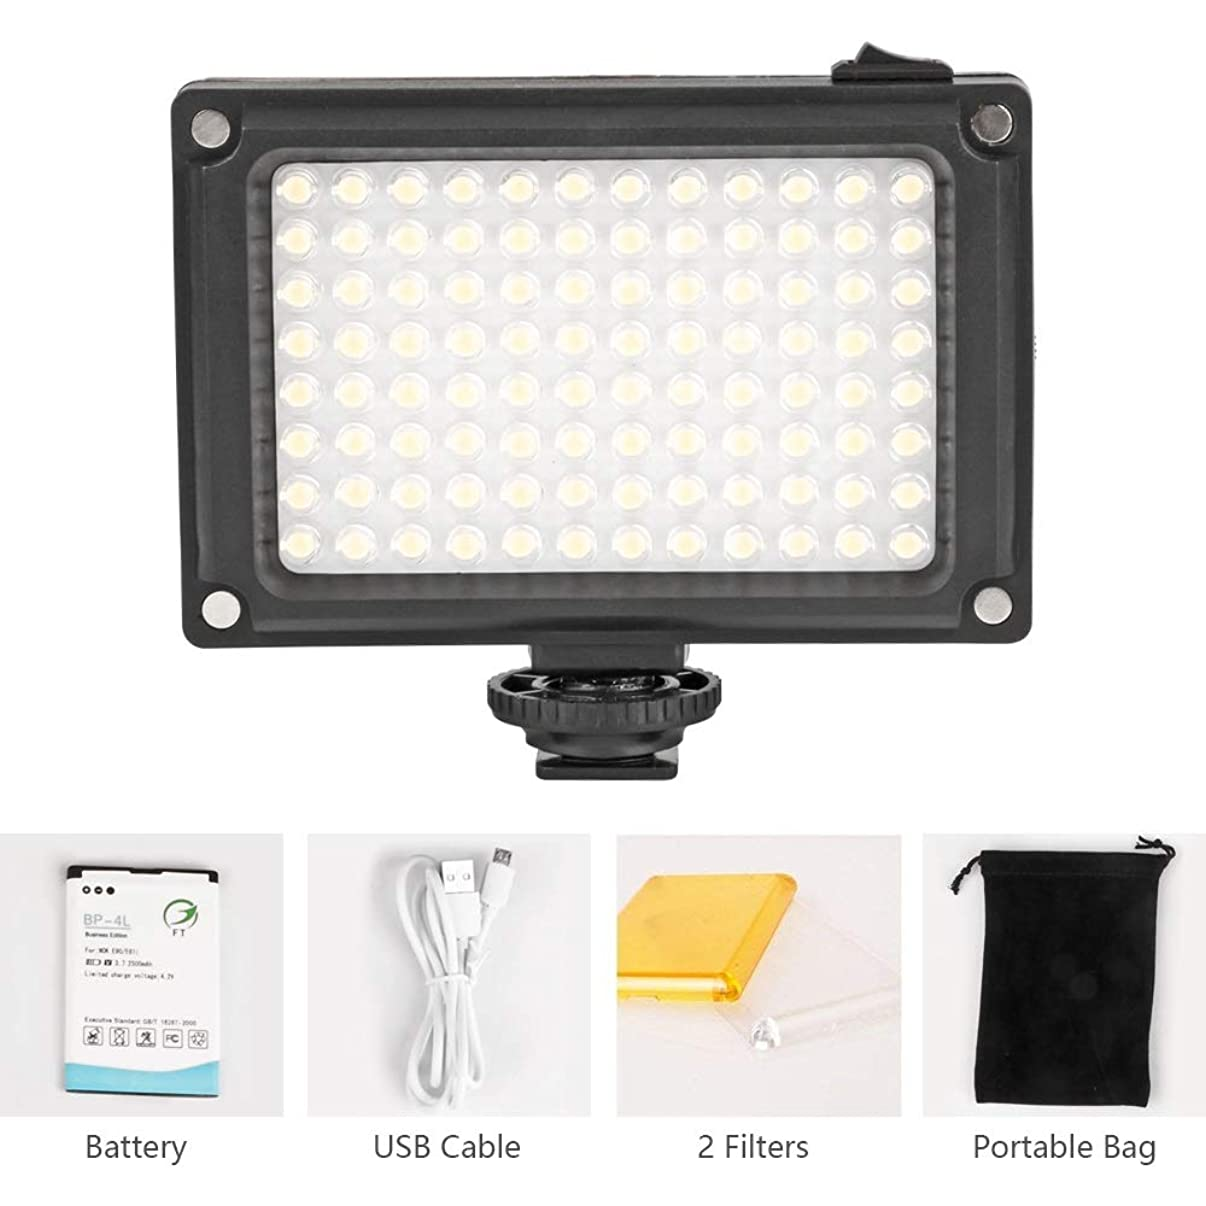 Rechargeable 96 LED Video Light Ultra Bright Camera/Camcorder Lighting Panel for Cannon Nikon Sony, Phones and other DSLR Cameras